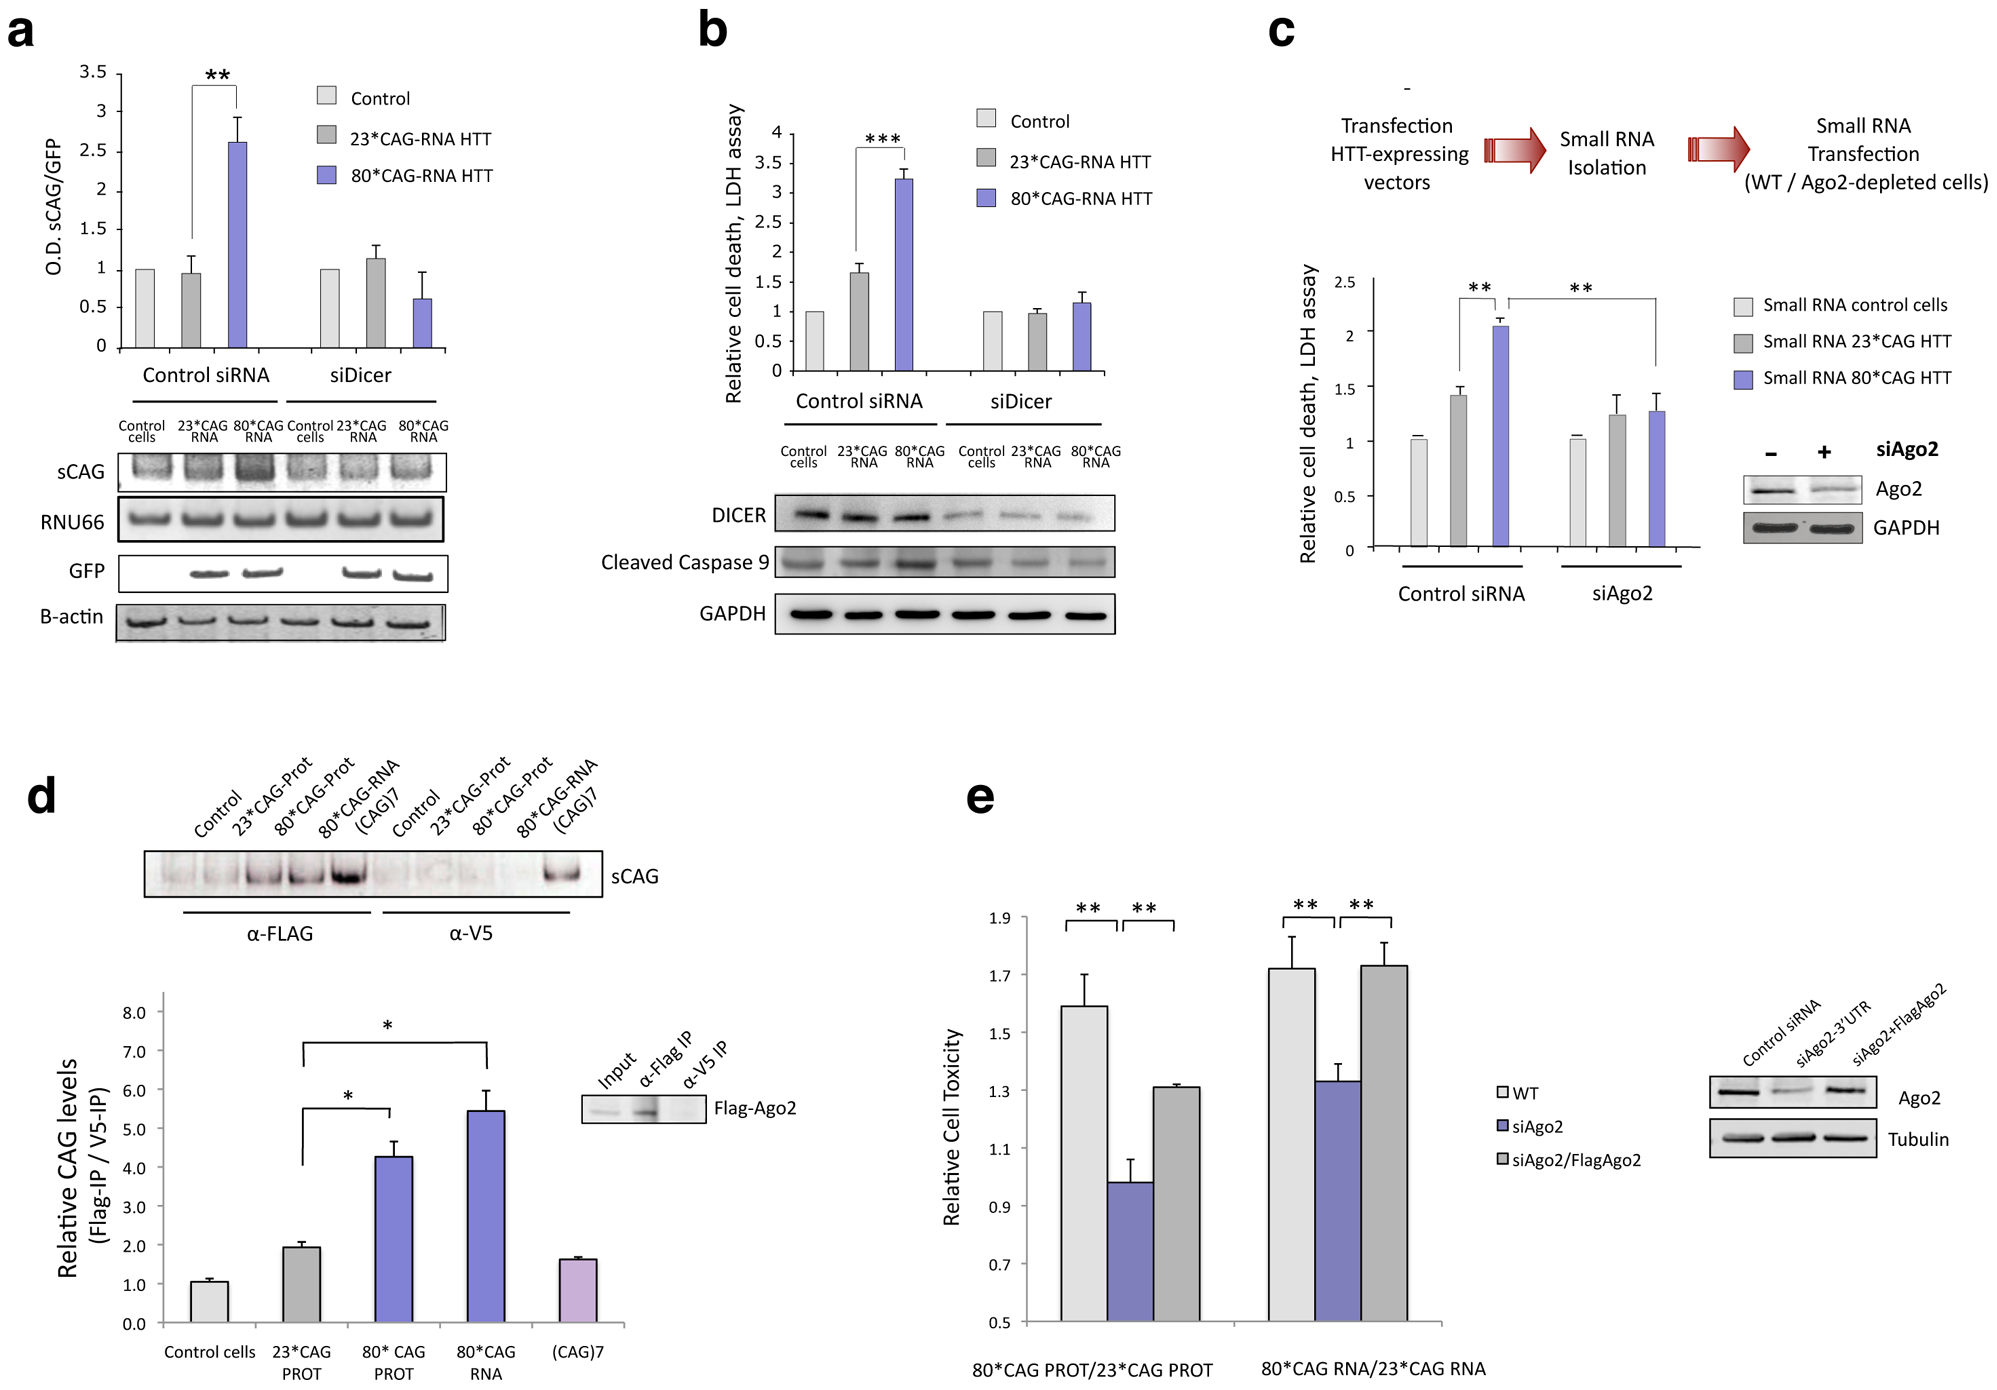 sCAG neurotoxic effect is dependent on Dicer and Ago proteins.